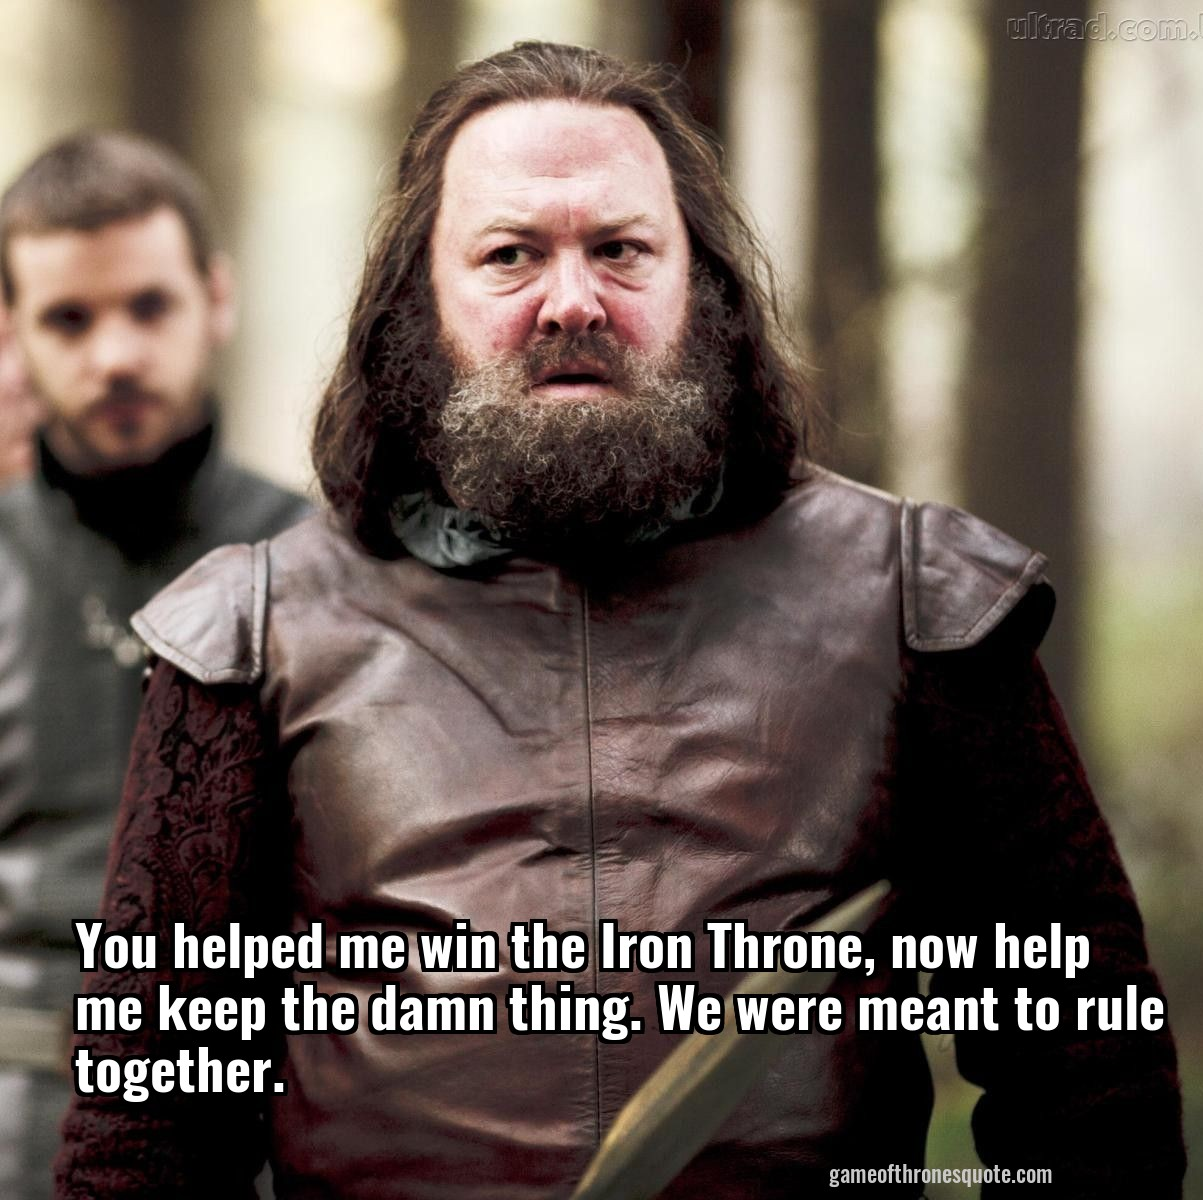 You helped me win the Iron Throne, now help me keep the damn thing. We were meant to rule together.